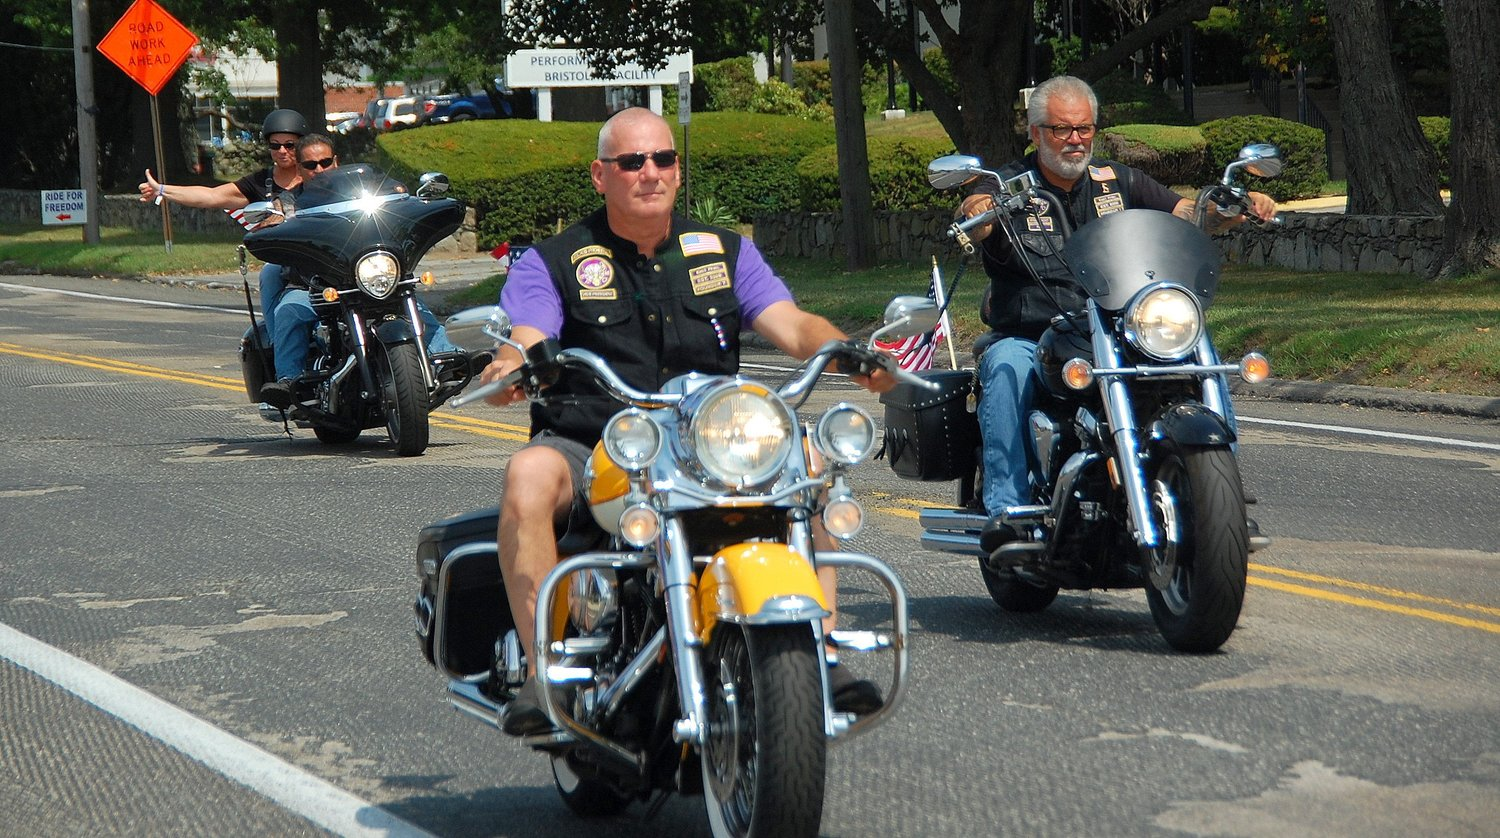 It was a great day for the 170-plus riders who took part in Sunday's annual Ride for Freedom.